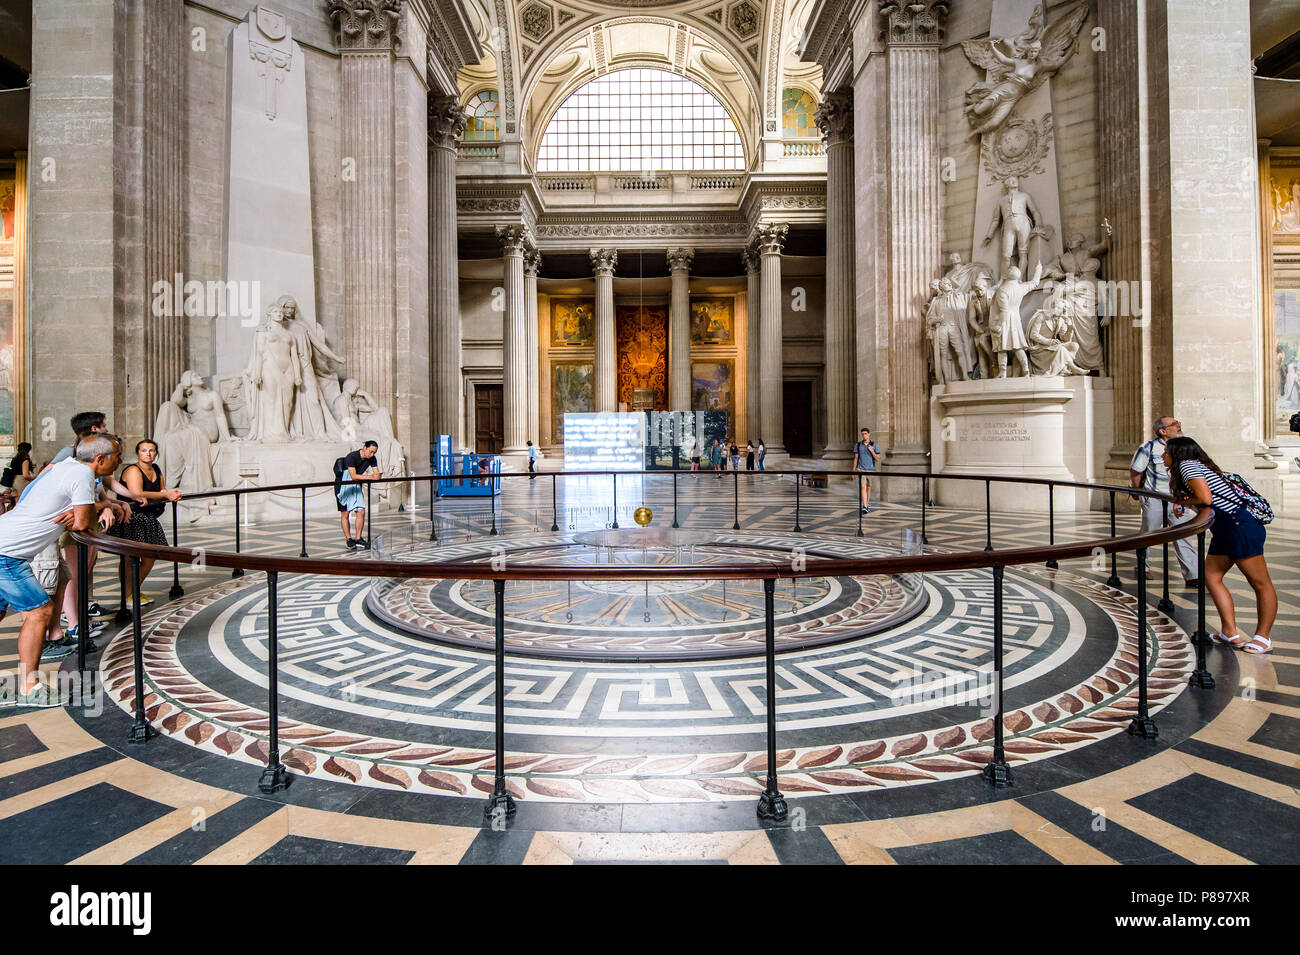 Le Pendule De Foucault Sous La Coupole Centrale Du Pantheon A Paris France Photo Stock Alamy